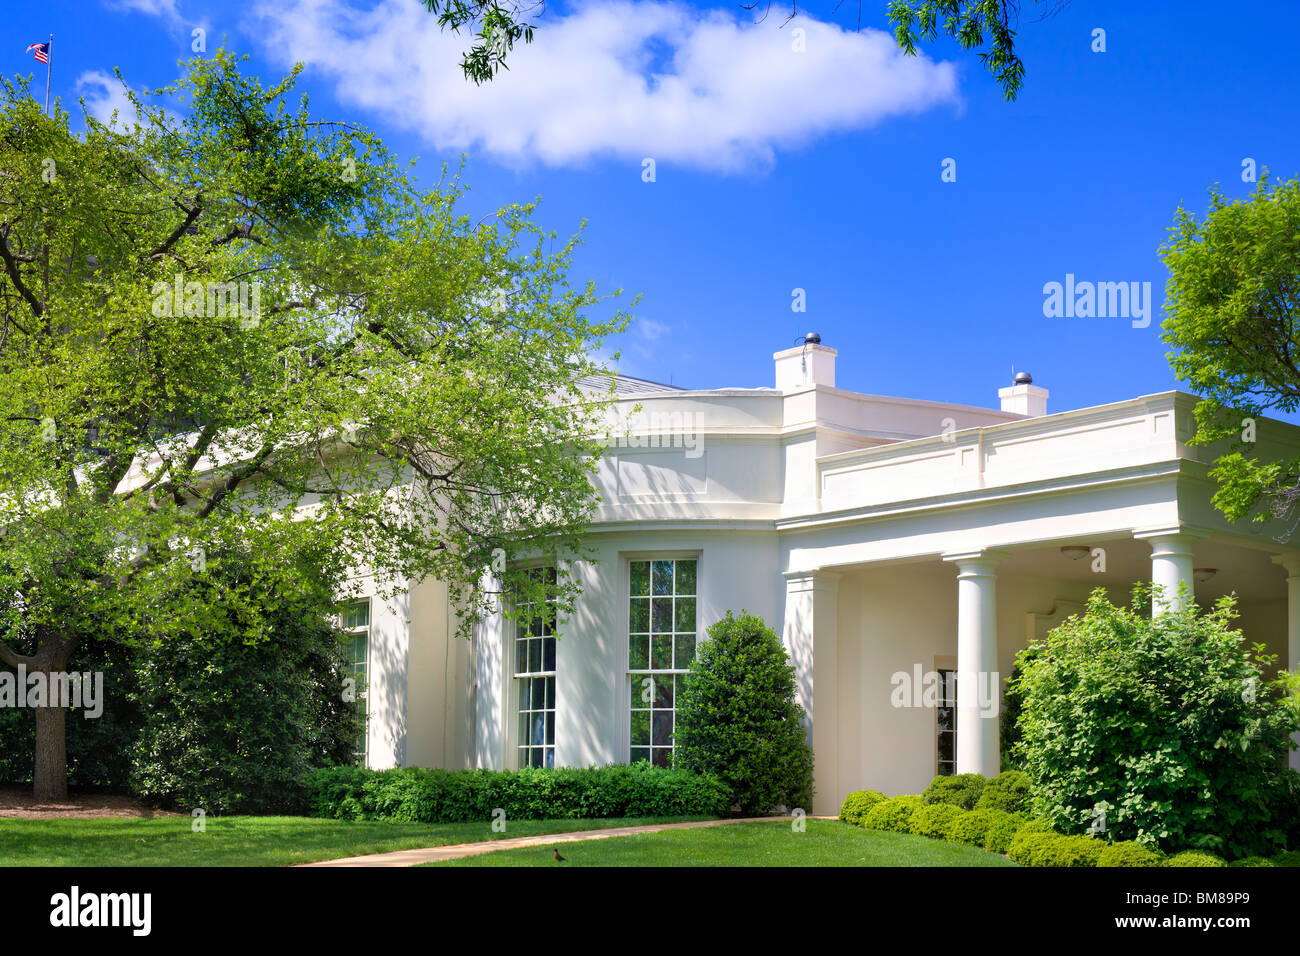 West Wing Stock Photos & West Wing Stock Images - Alamy